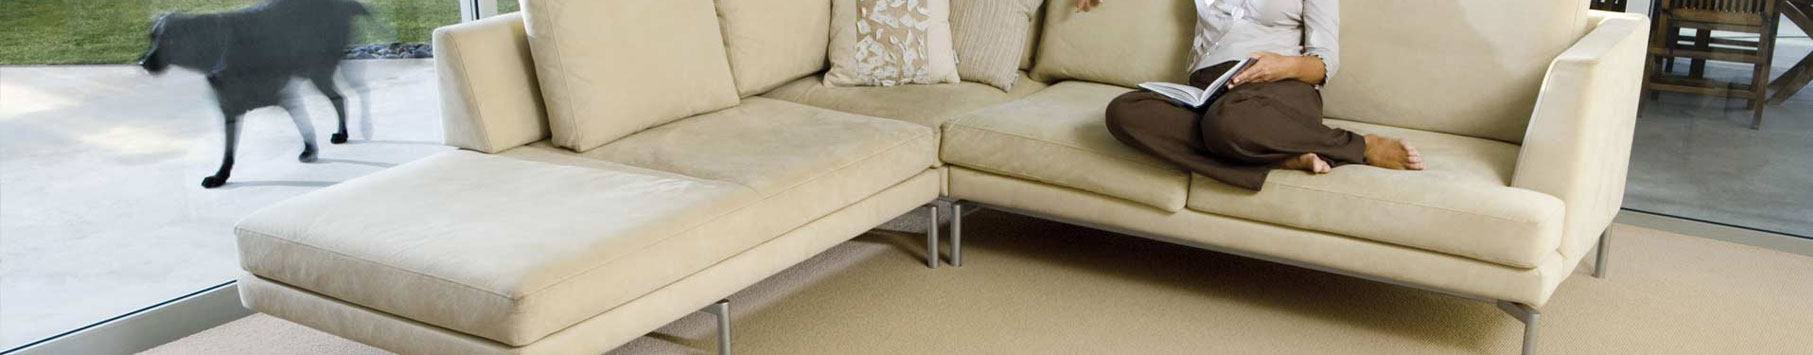 images/slideshow/carpetcare.jpg